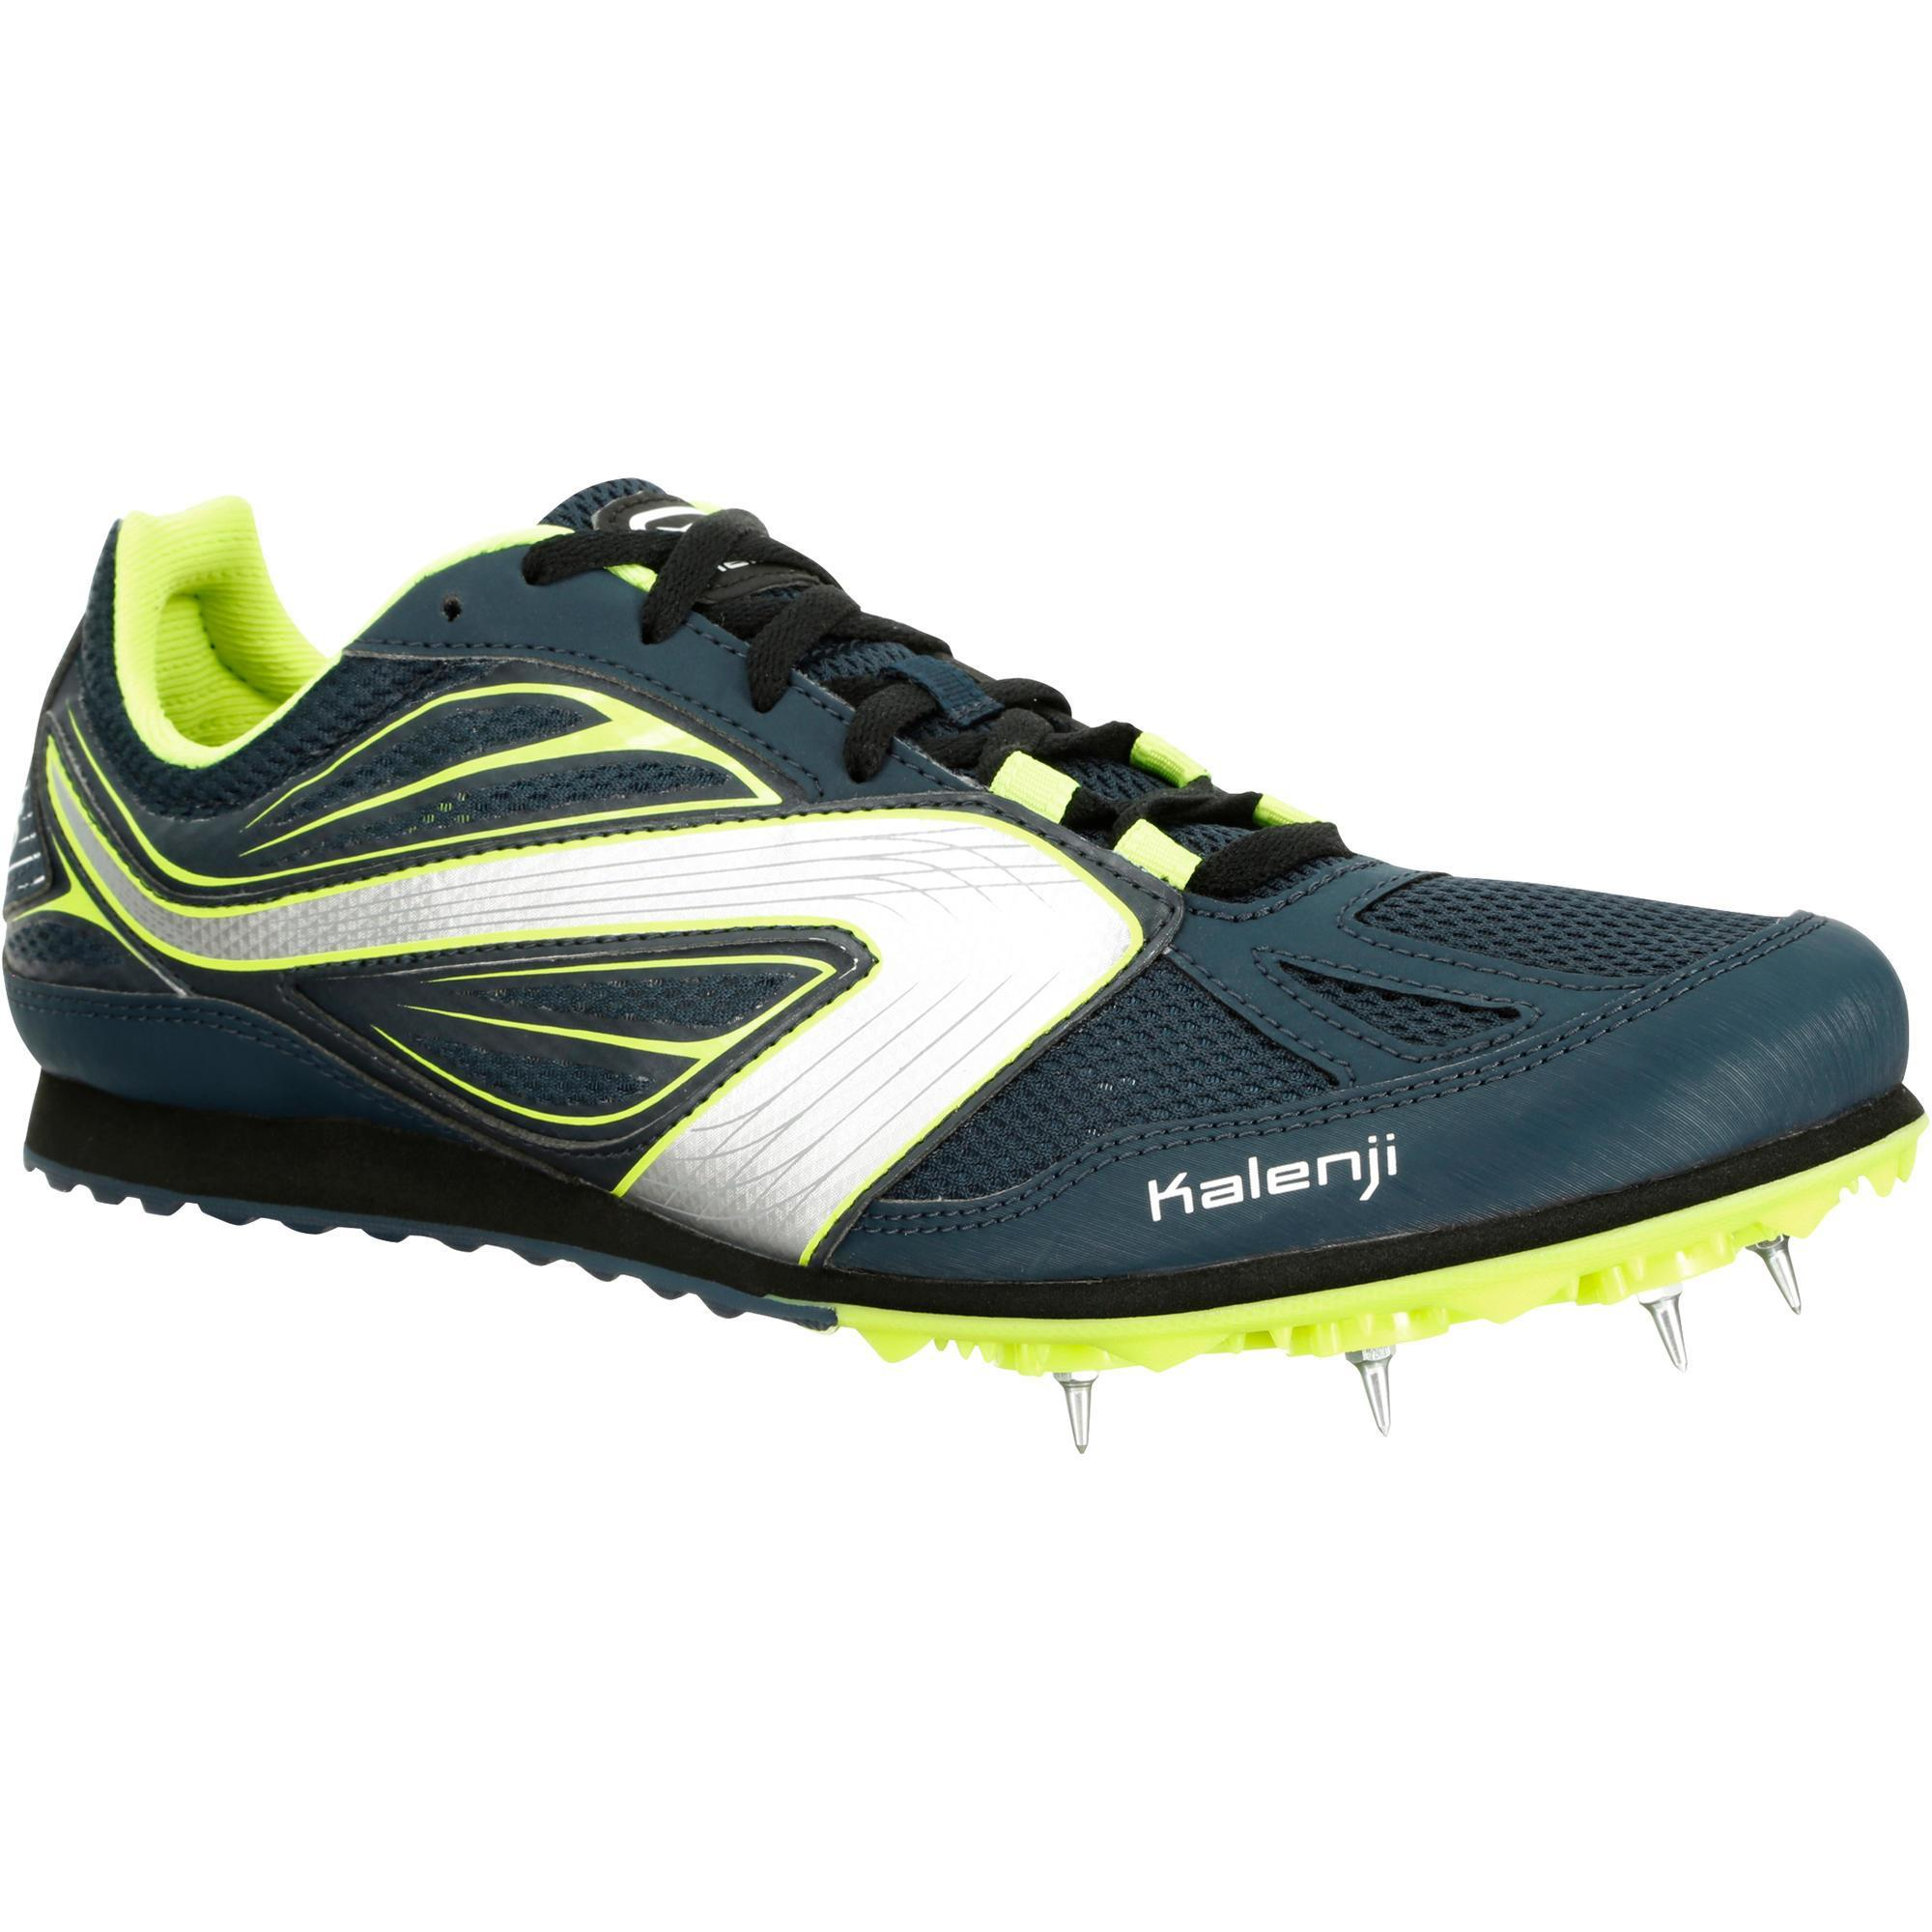 purchase cheap dc48e 875b6 Comprar zapatillas de cross y atletismo   Decathlon